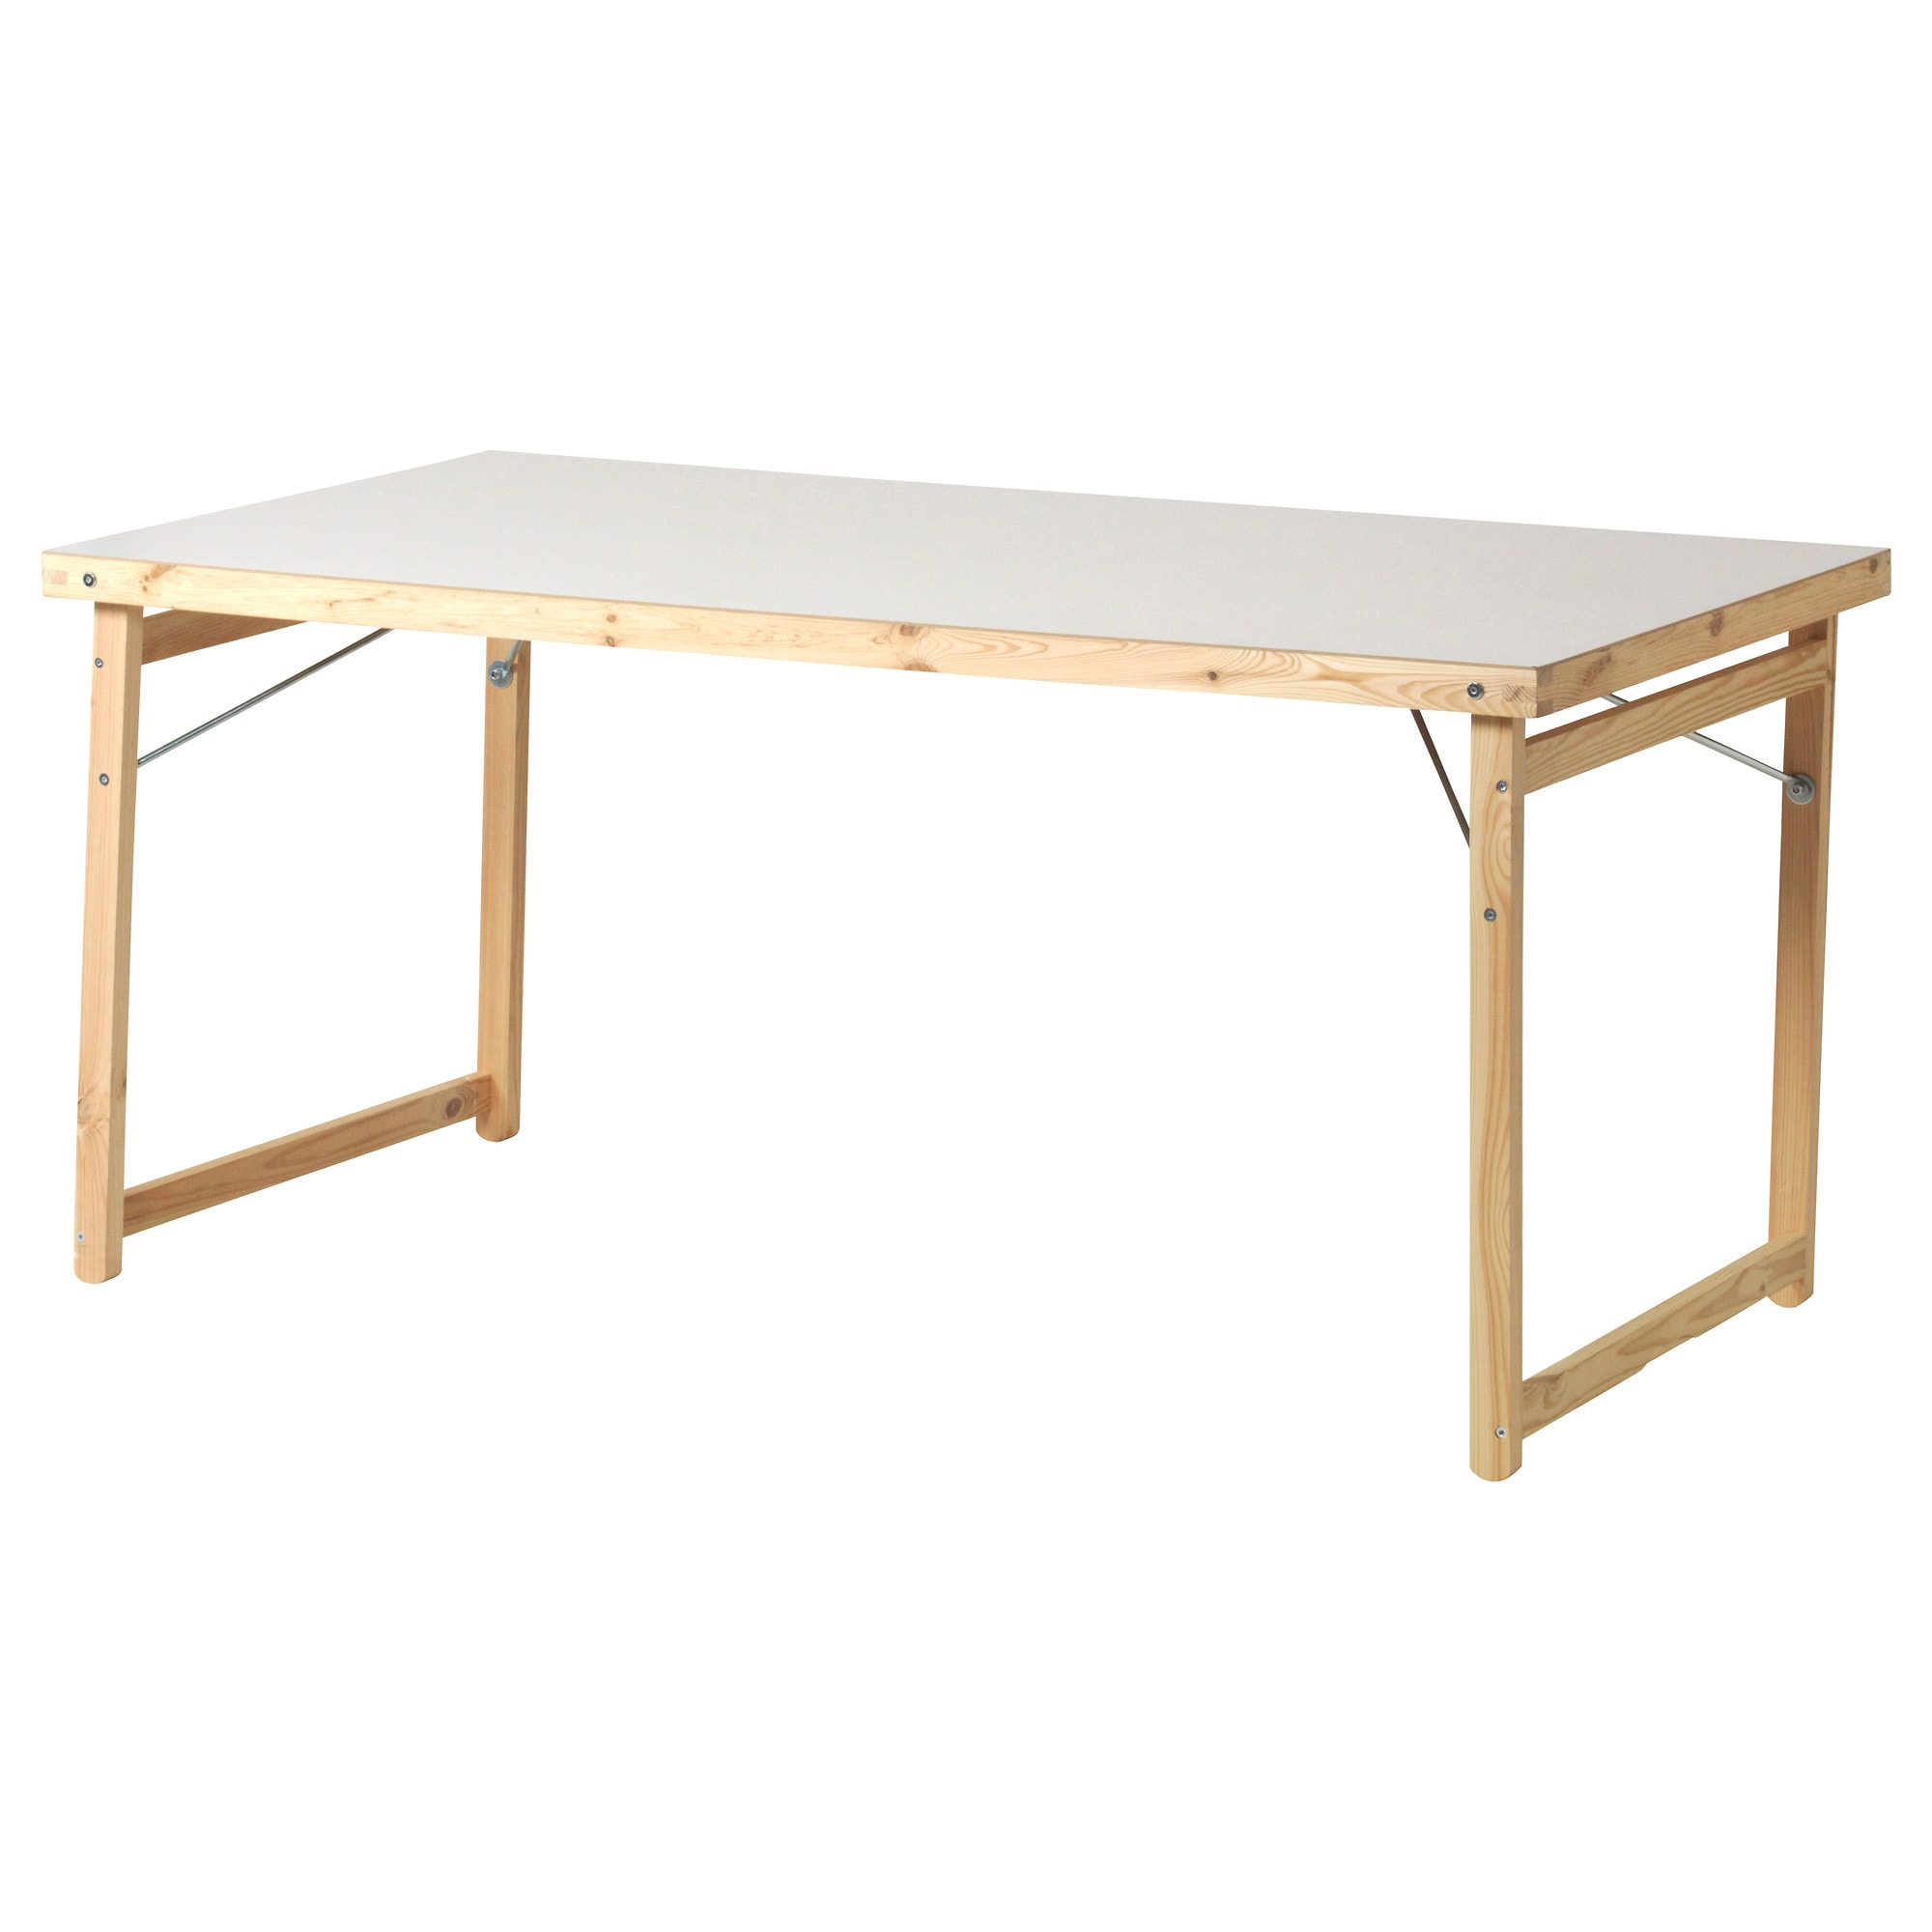 Table de jardin orion ronde naturel 8 personnes leroy for Table jardin 8 personnes